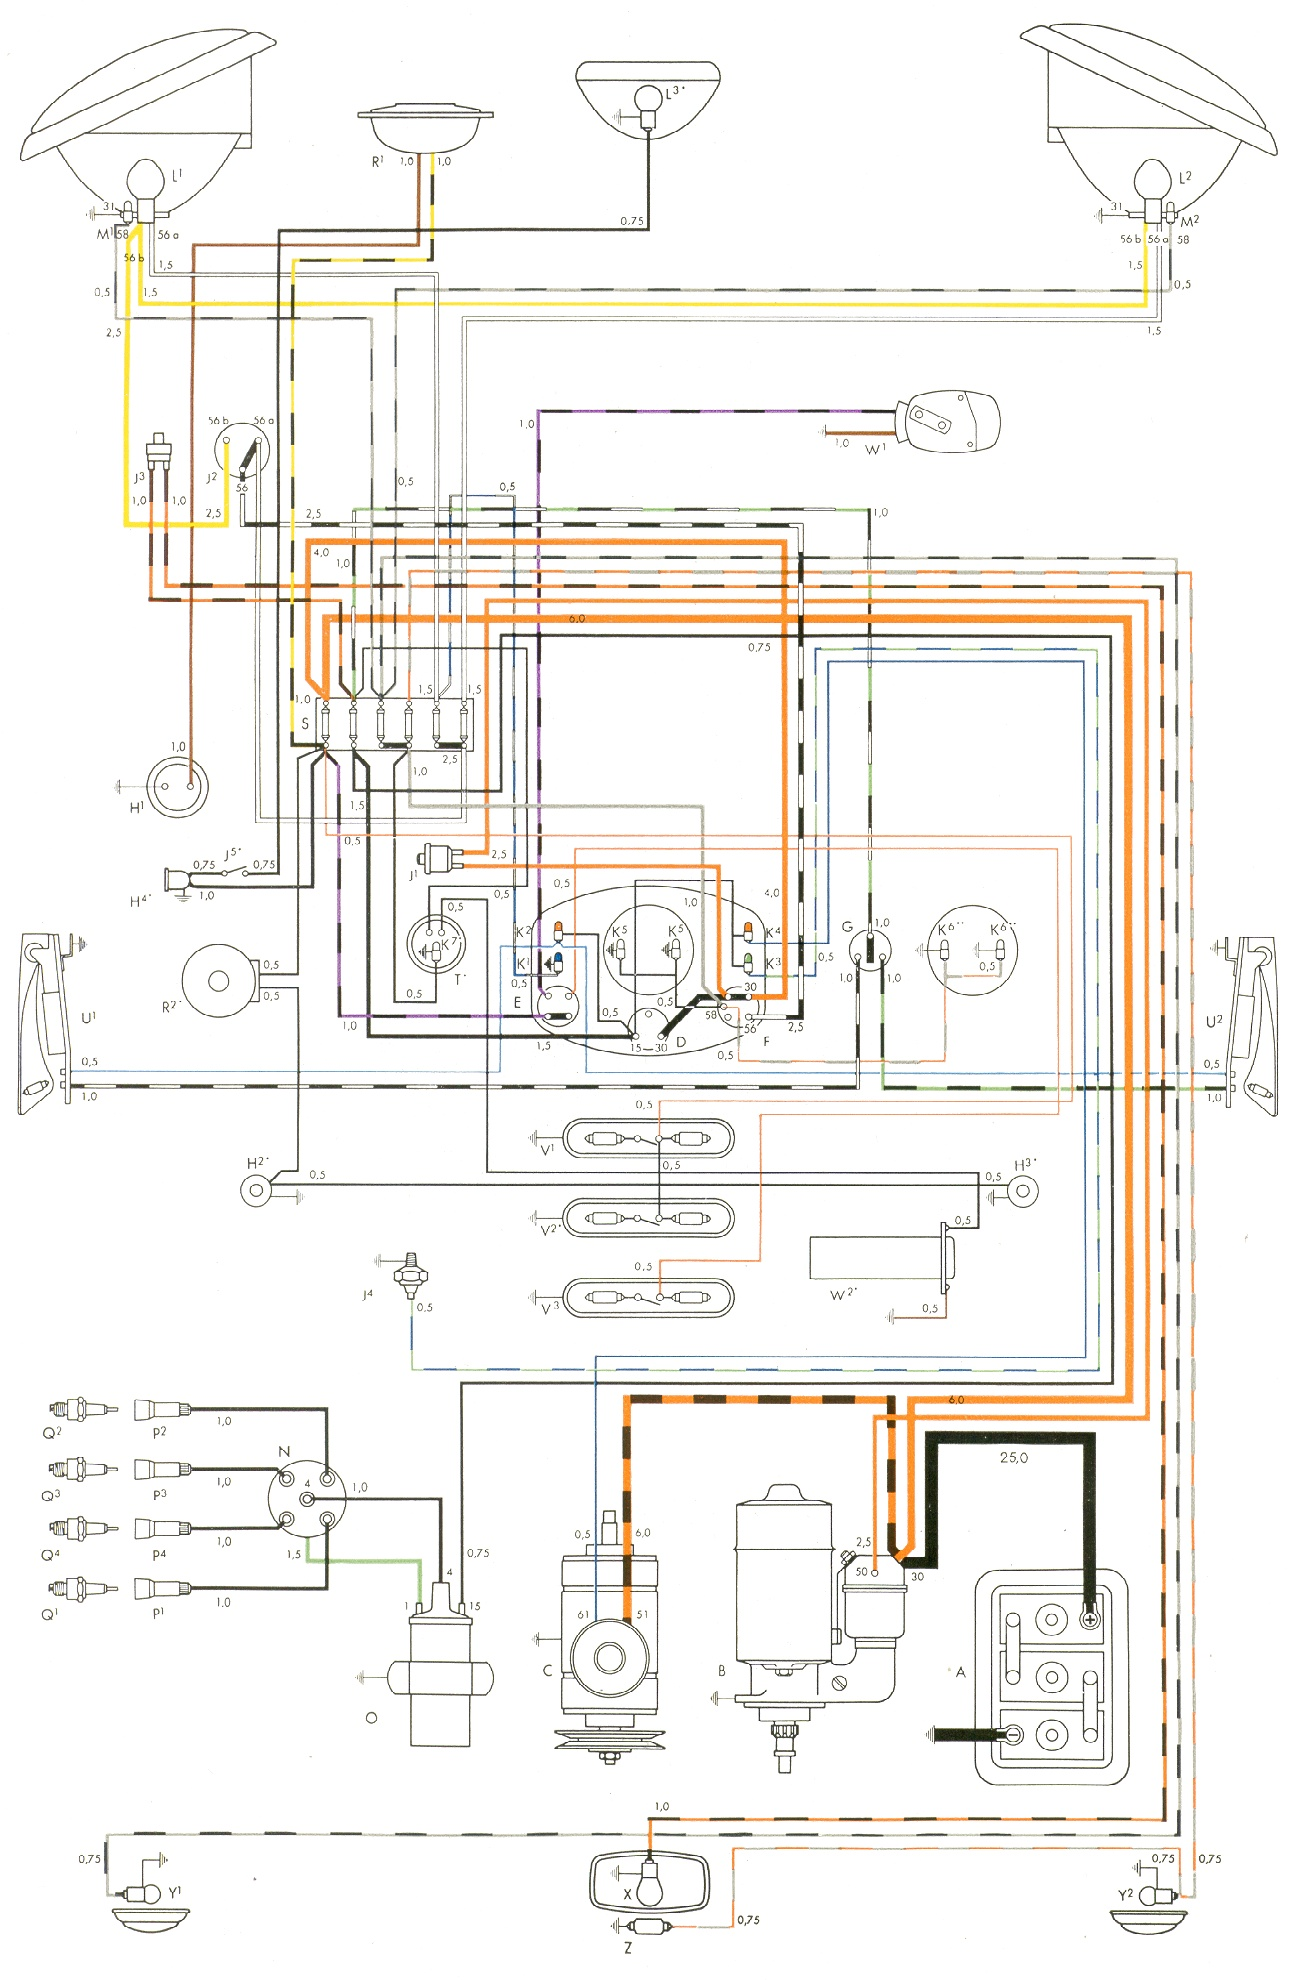 Air Cooled Vw Fuel Gauge Wiring Diagram Vintagebus Com Vw Bus And Other Wiring Diagrams